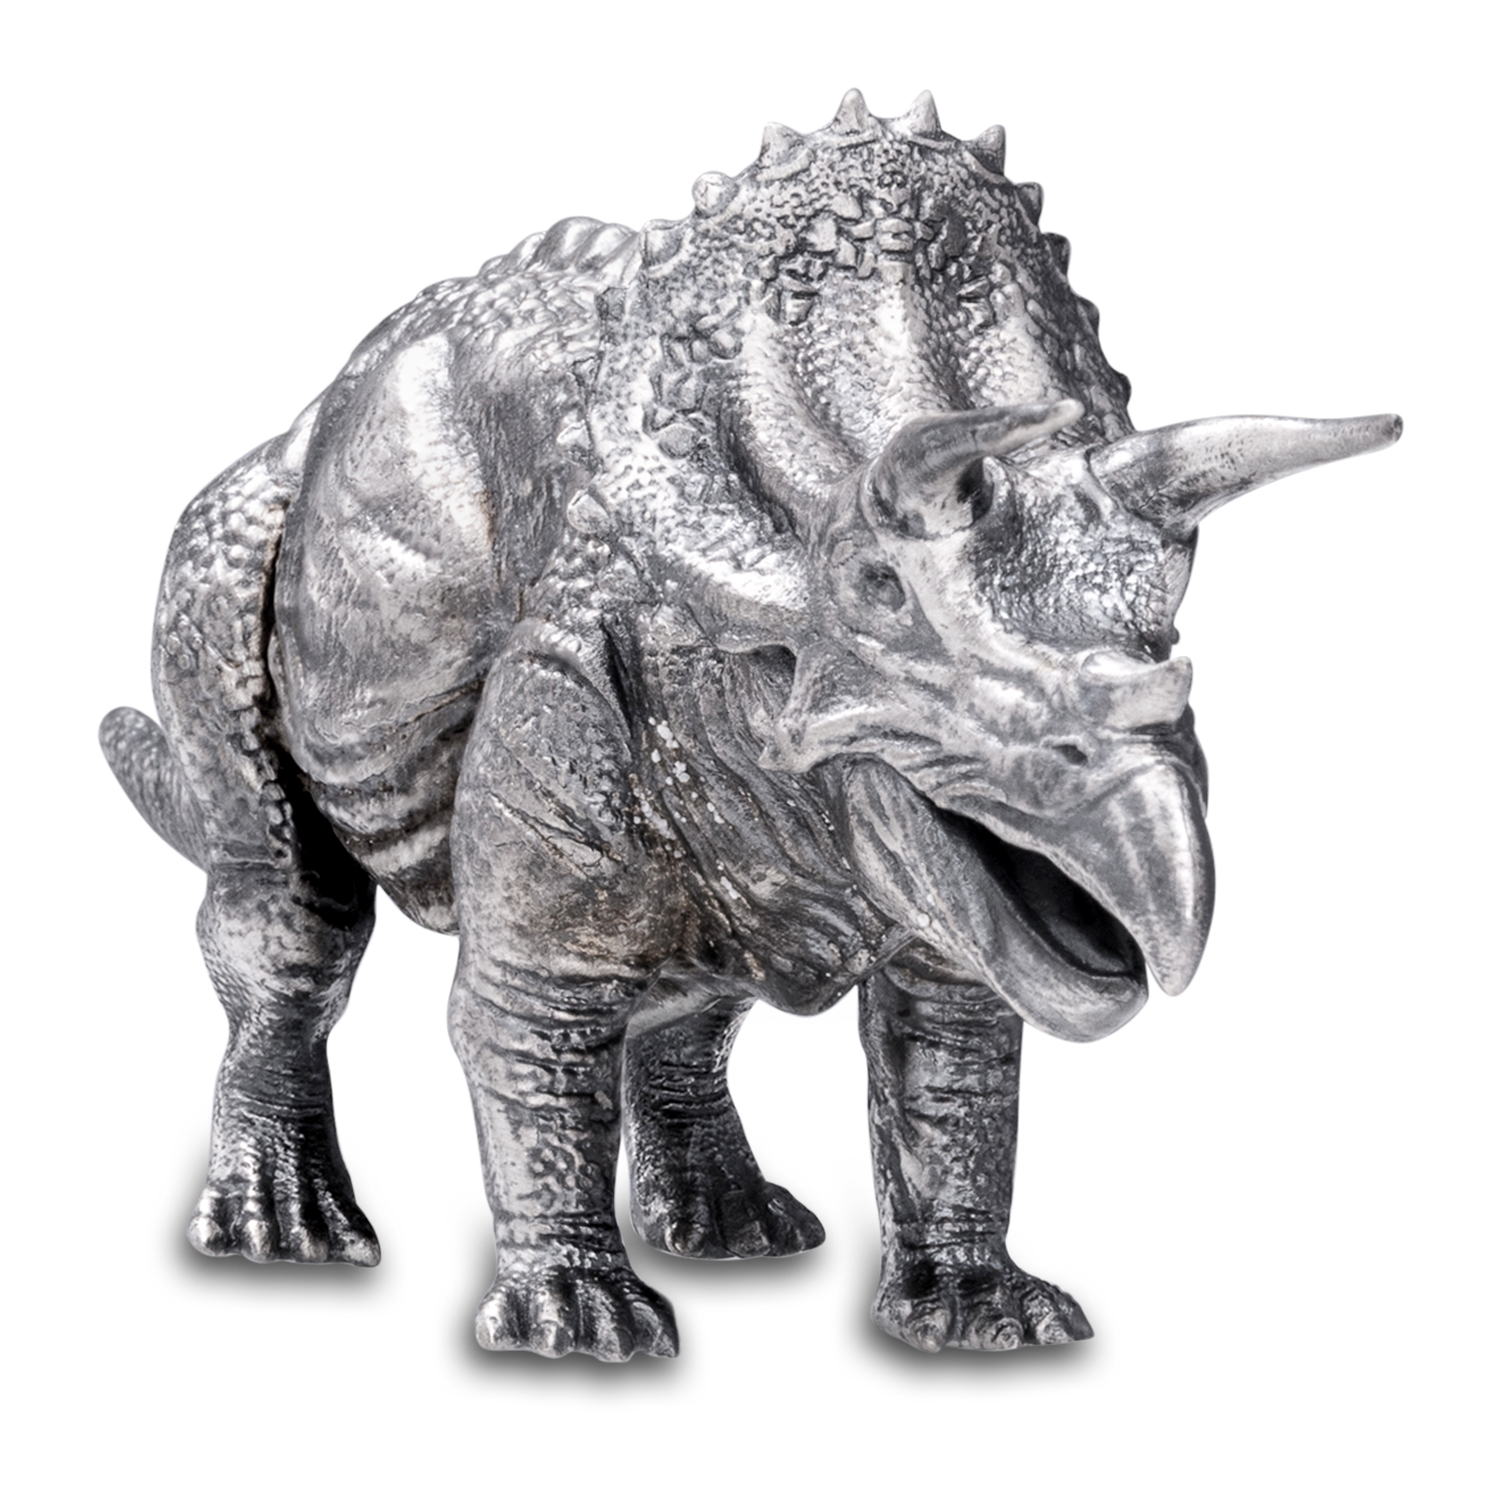 8 oz Silver Antique Statue - Triceratops